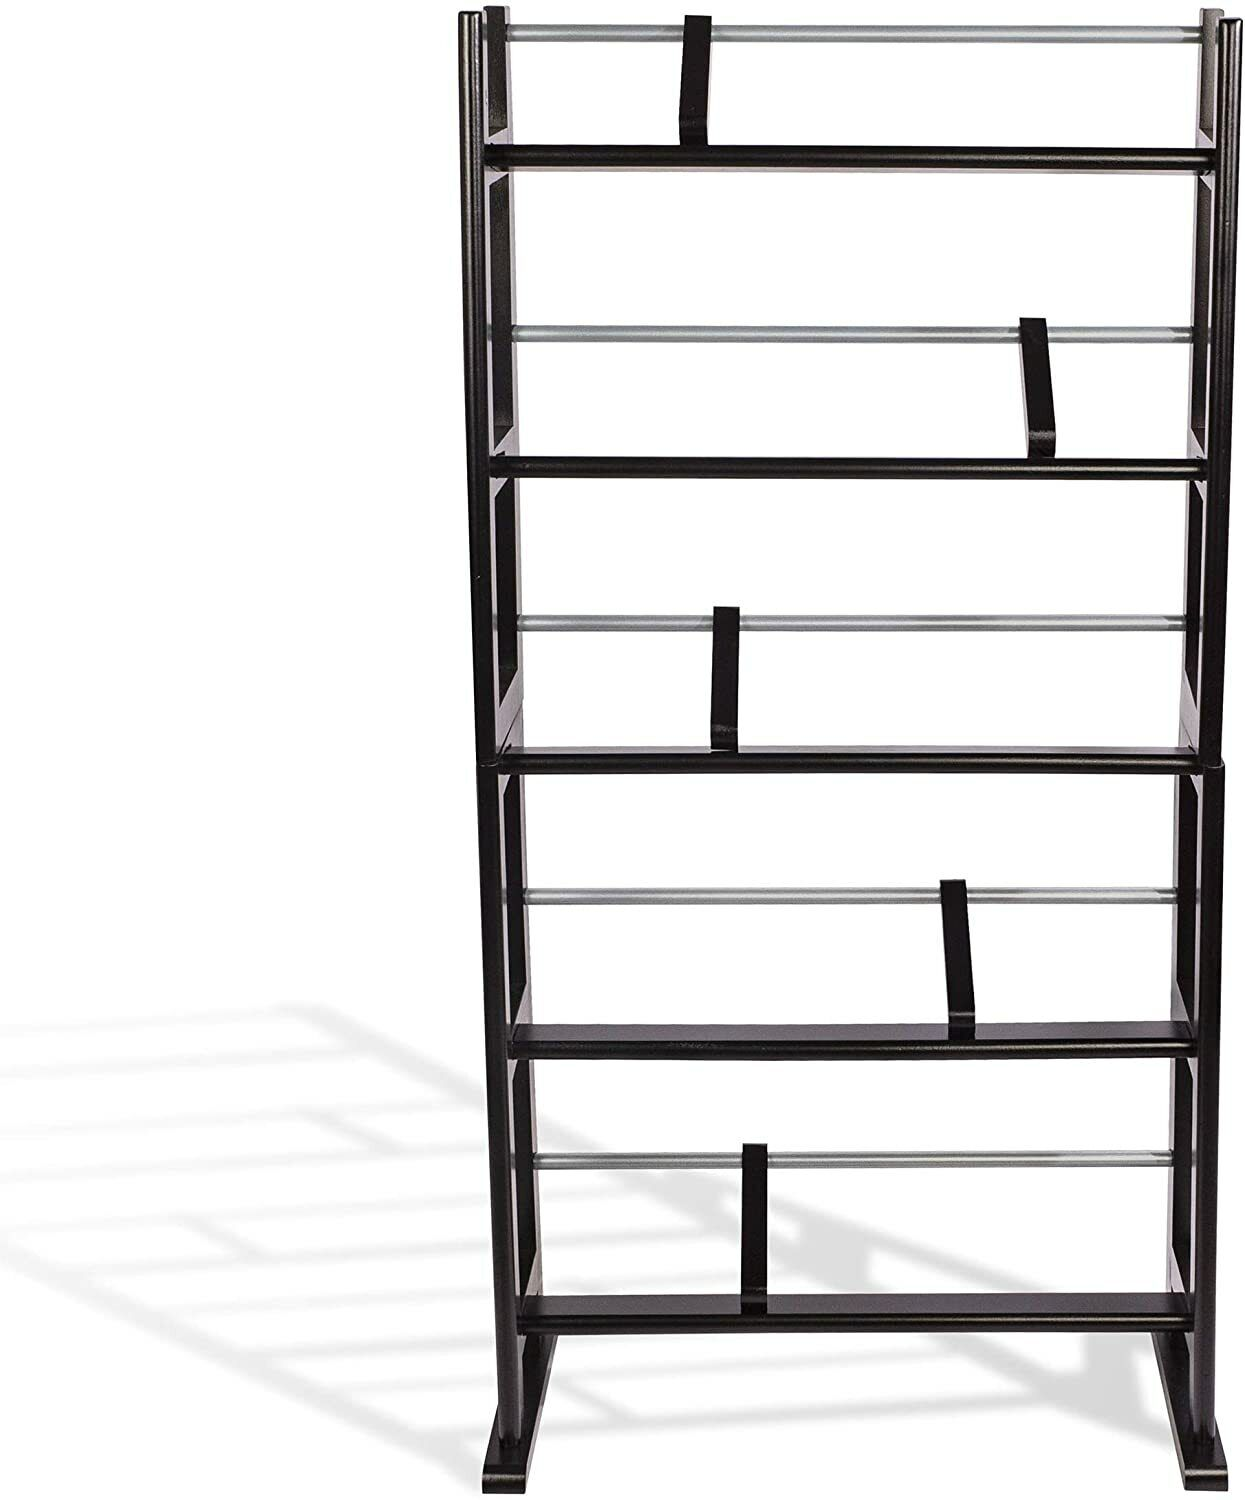 Holds Up To 230 CDs Or 150 DVDs, Contemporary Wood Metal Design With Wide Feet - $37.99